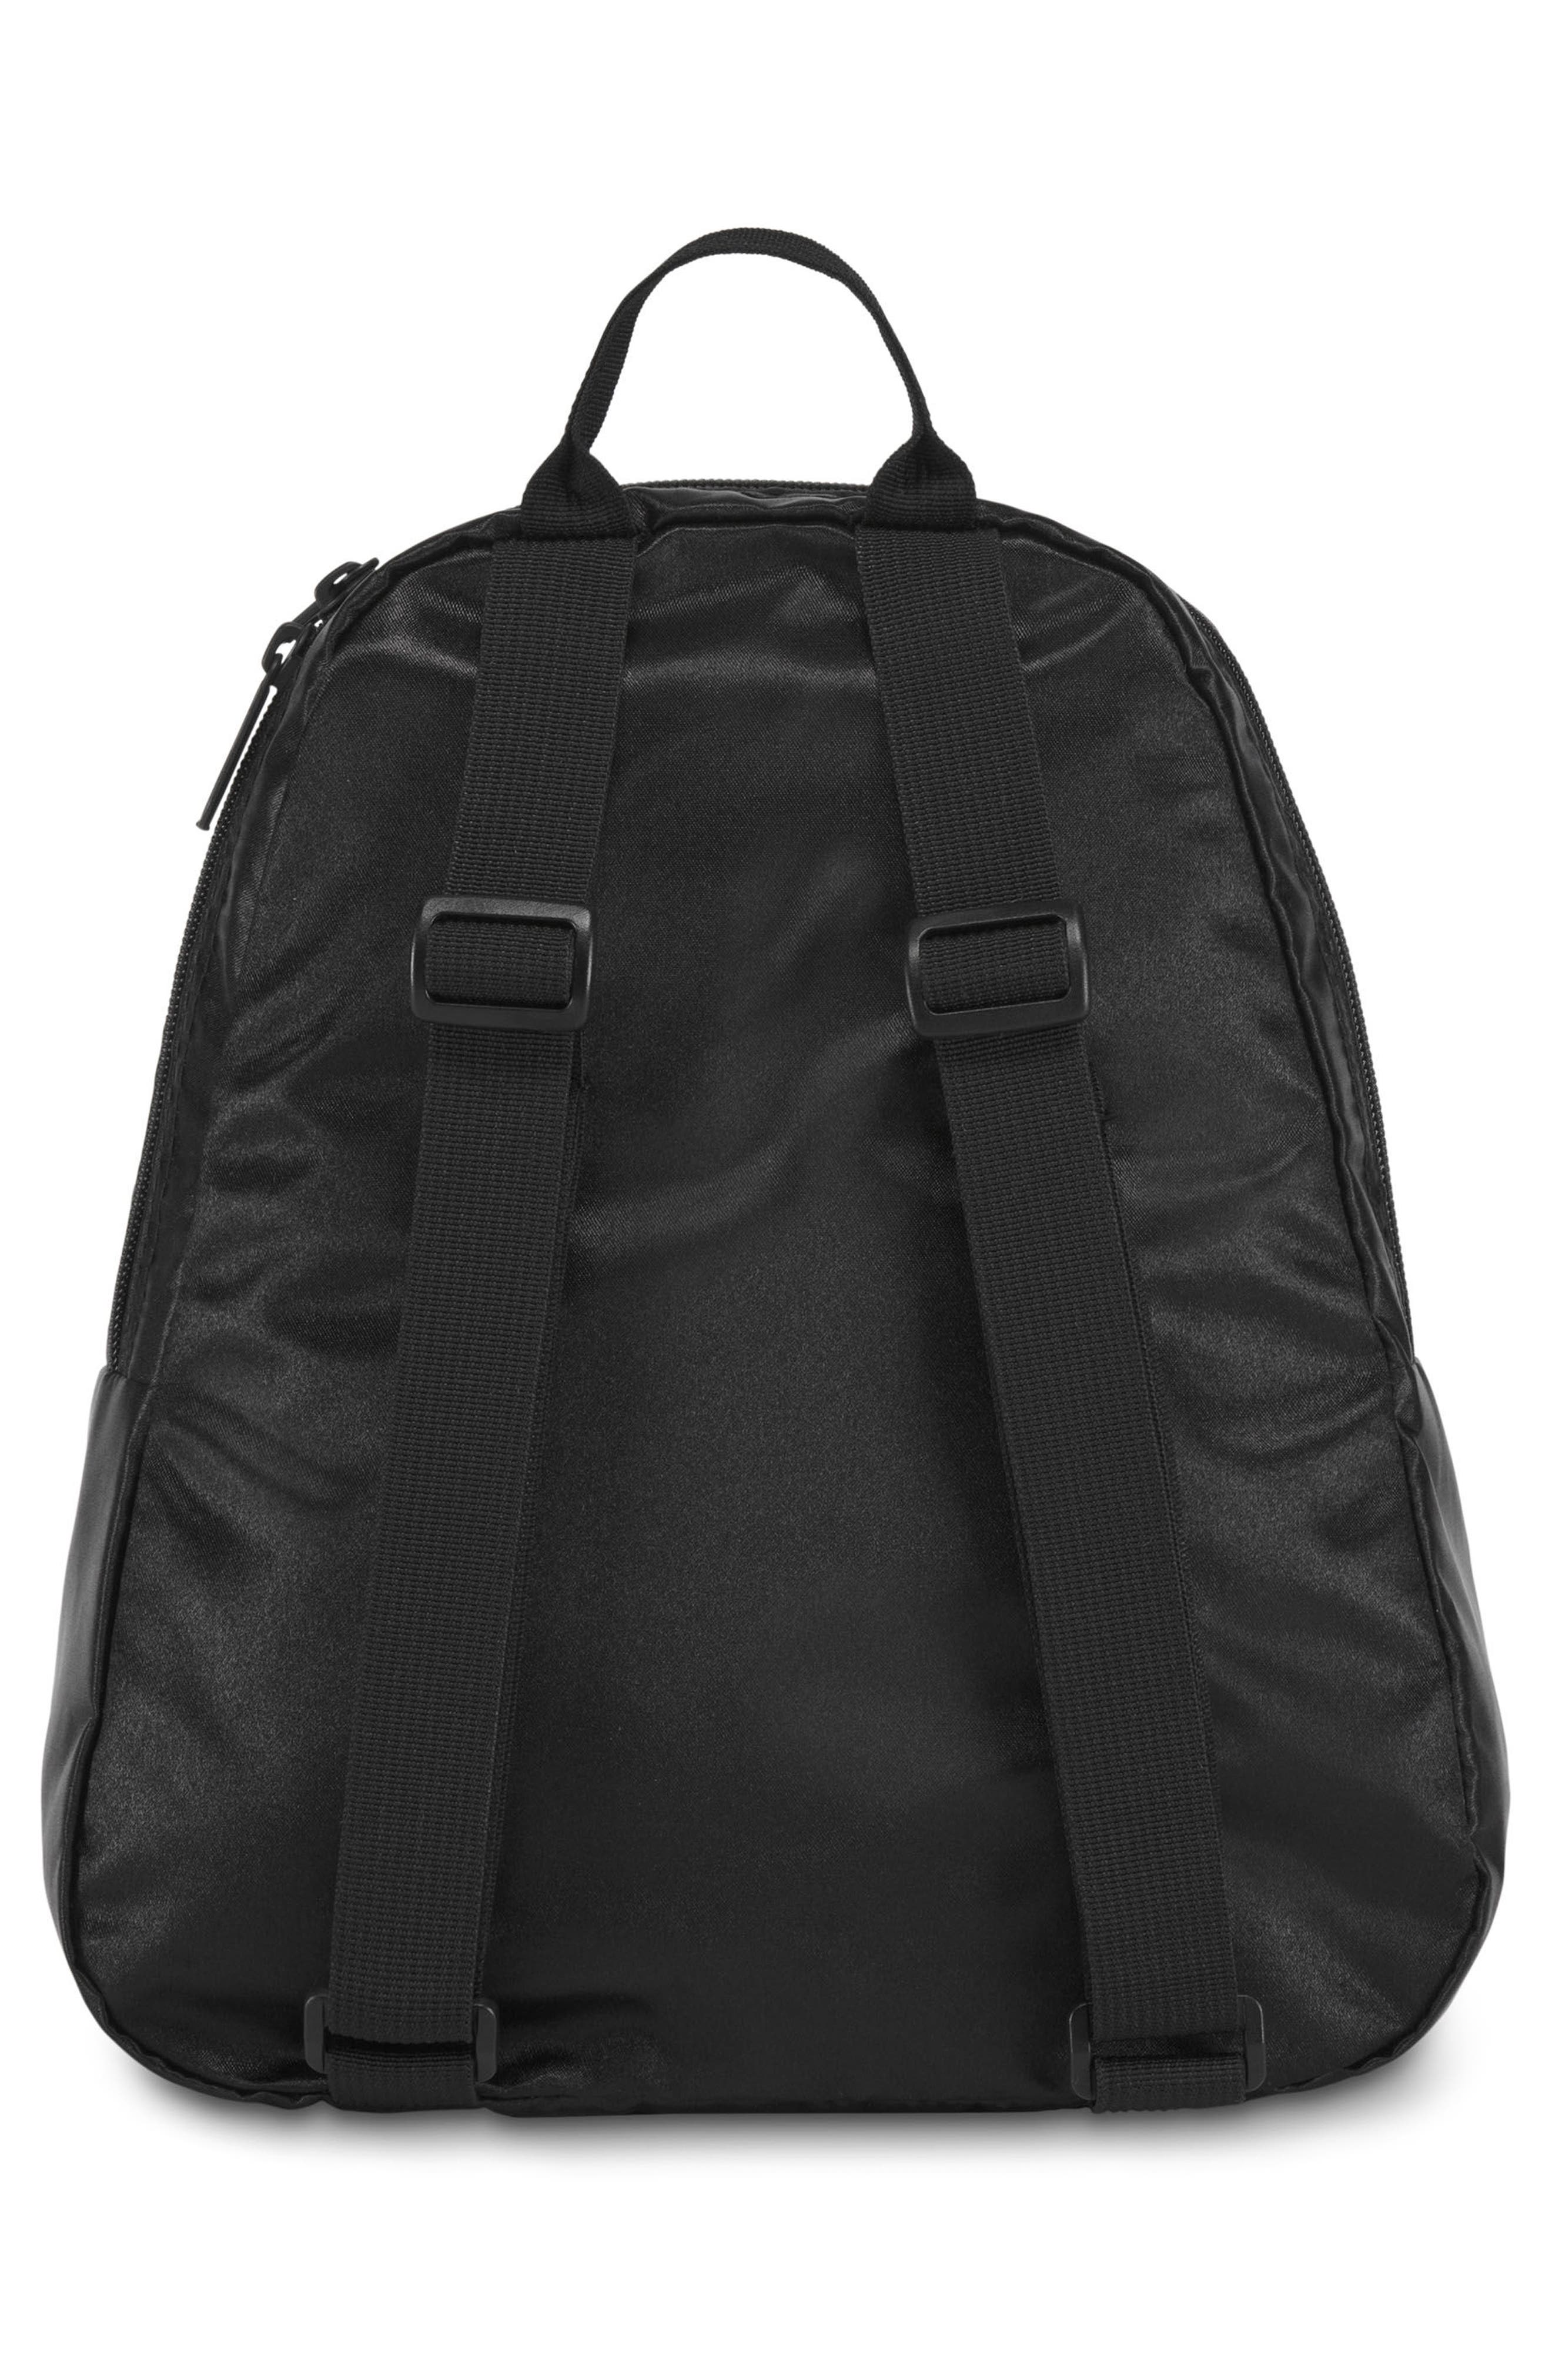 Half Pint FX Backpack,                             Alternate thumbnail 3, color,                             Satin Rose